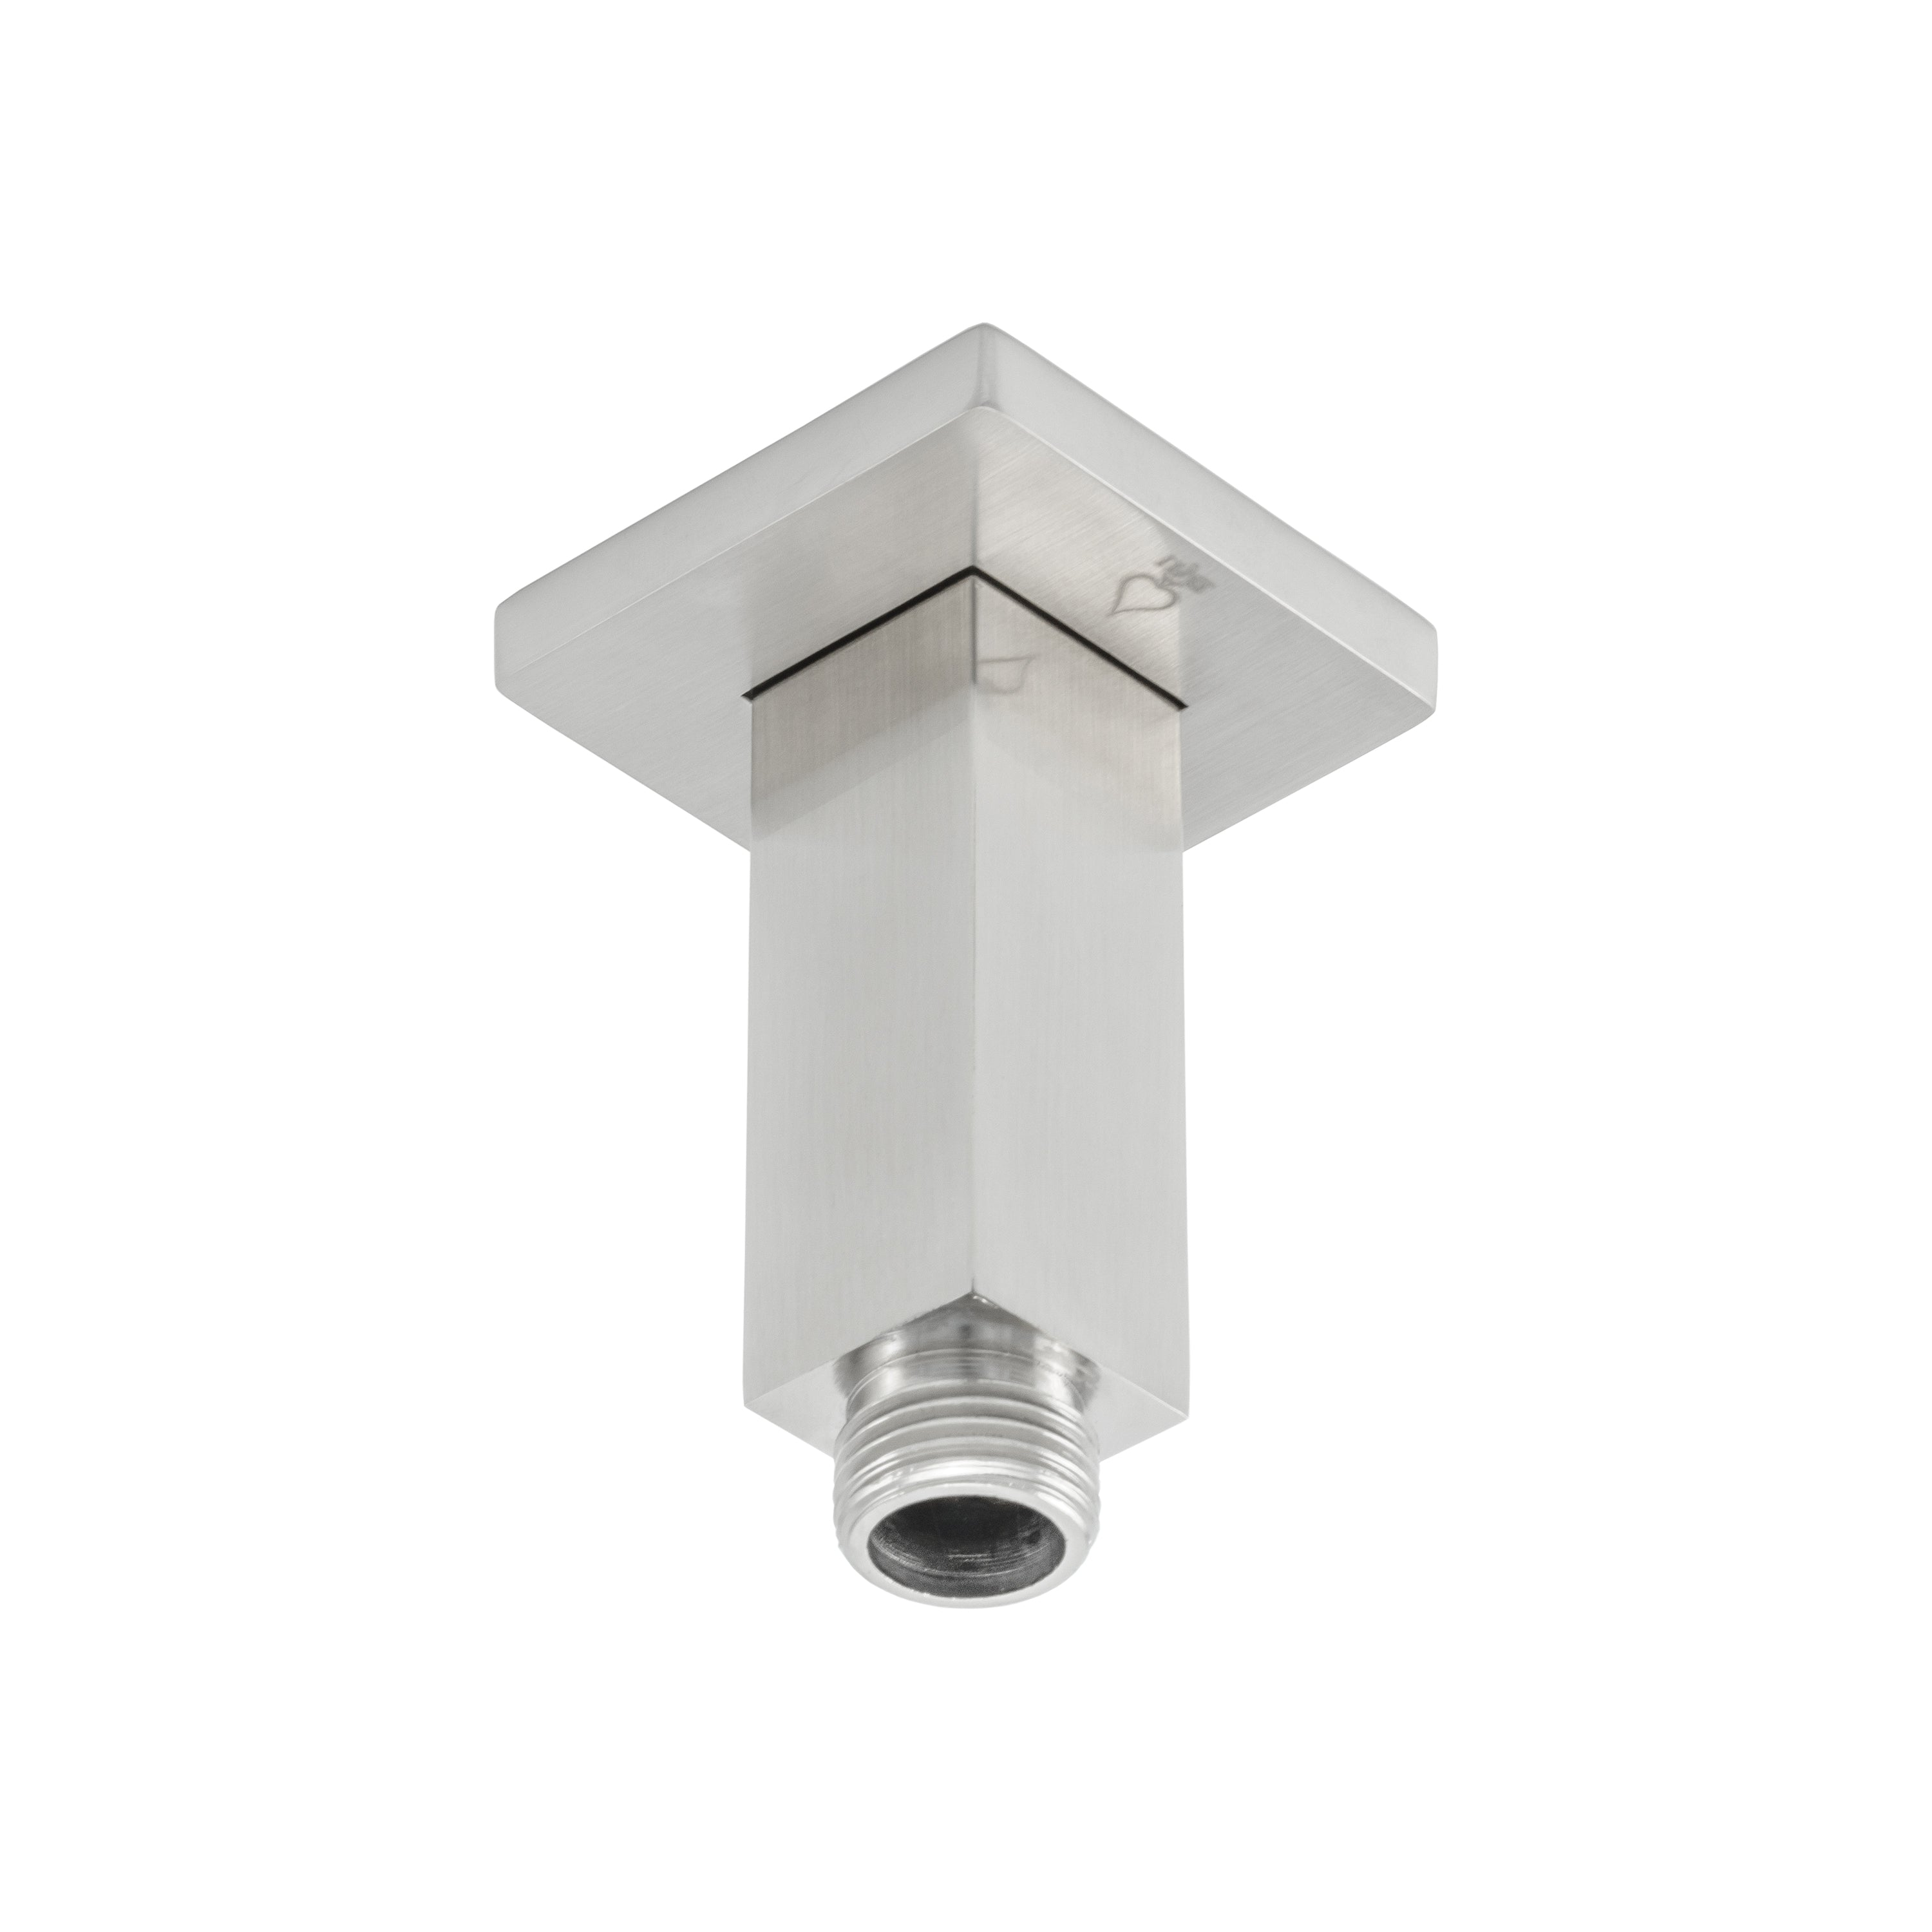 Bai 0432 Ceiling Mounted 3 Inch Shower Head Arm In Brushed